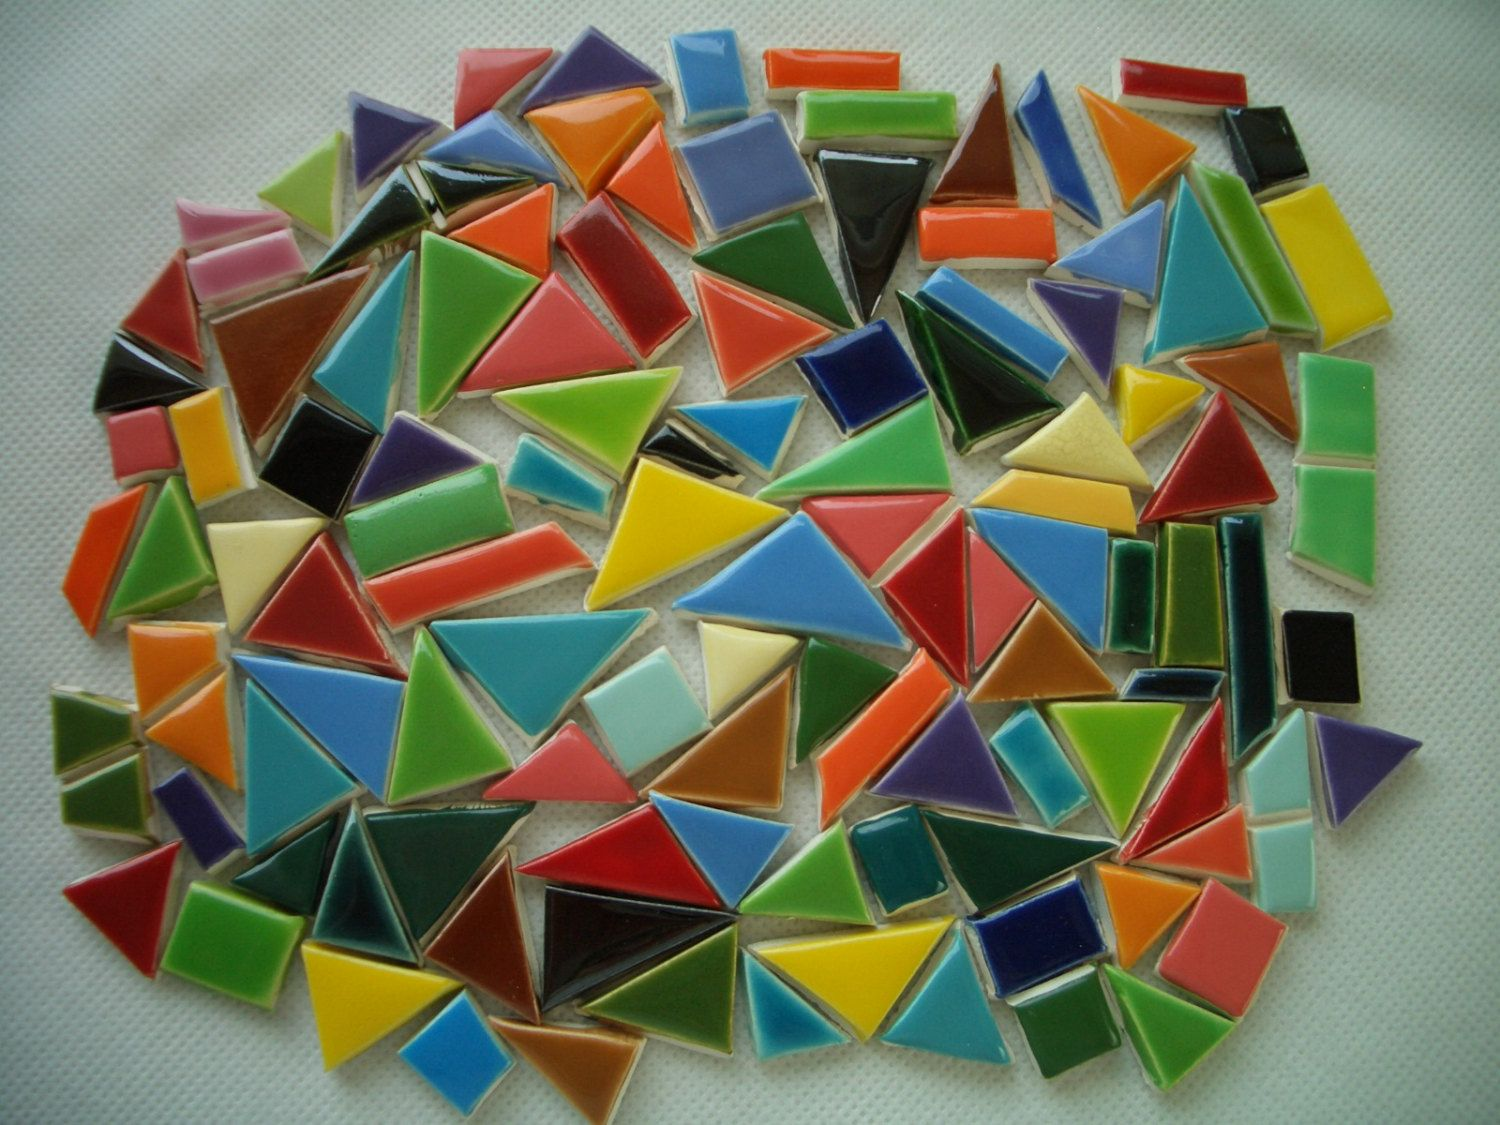 Ssp121 chicklets 121 pcs fun colorful tiny tiles ceramic ssp121 chicklets 121 pcs fun colorful tiny tiles ceramic mosaic tiles dailygadgetfo Images